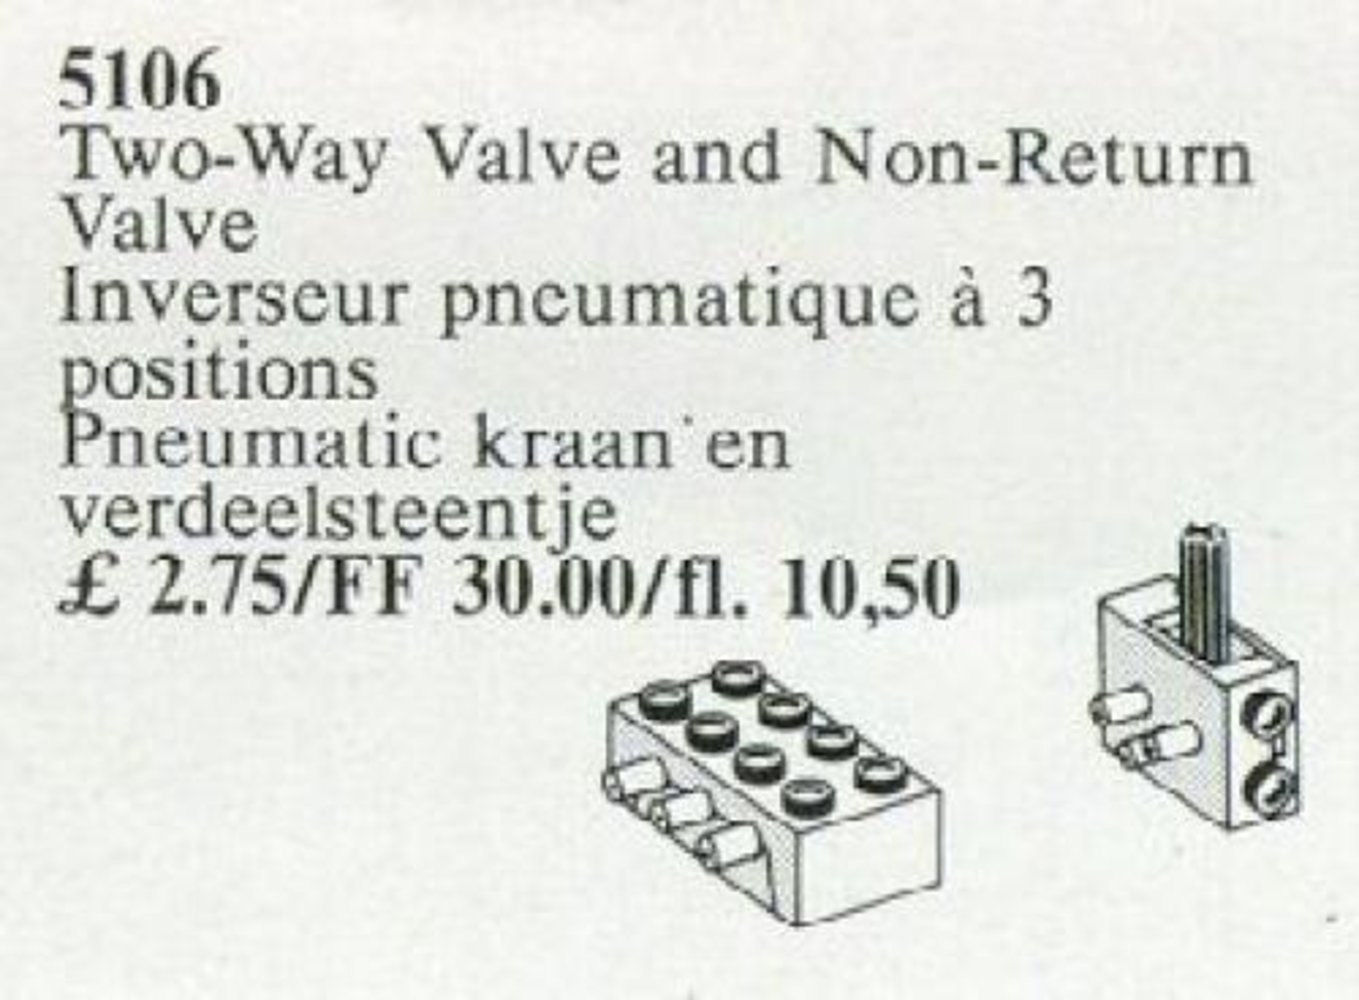 Two-Way Valve and Non-Return Valve